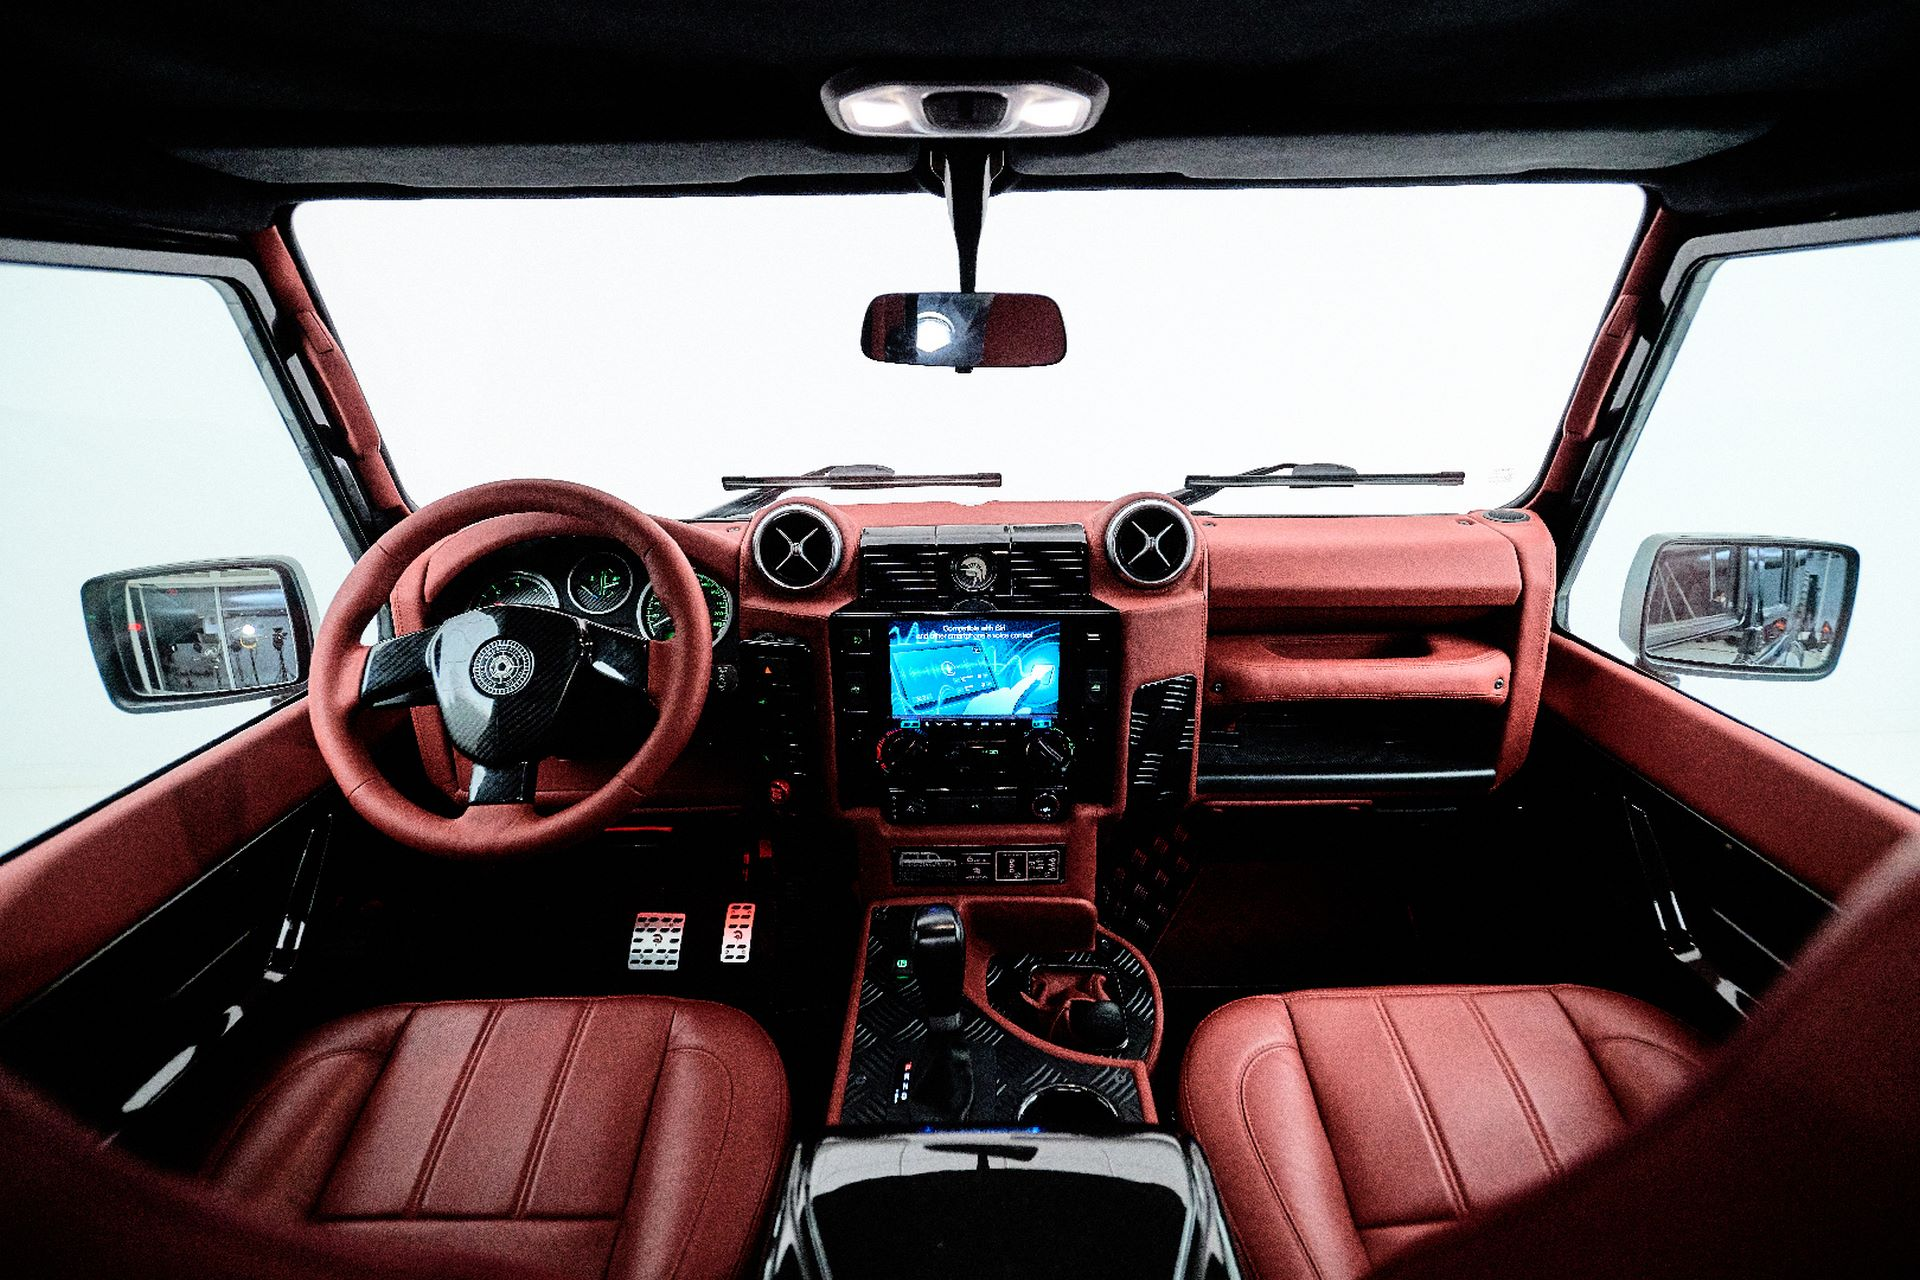 Porsche-911-964-Turbo-and-Land-Rover-Defender-by-Ares-Design-20